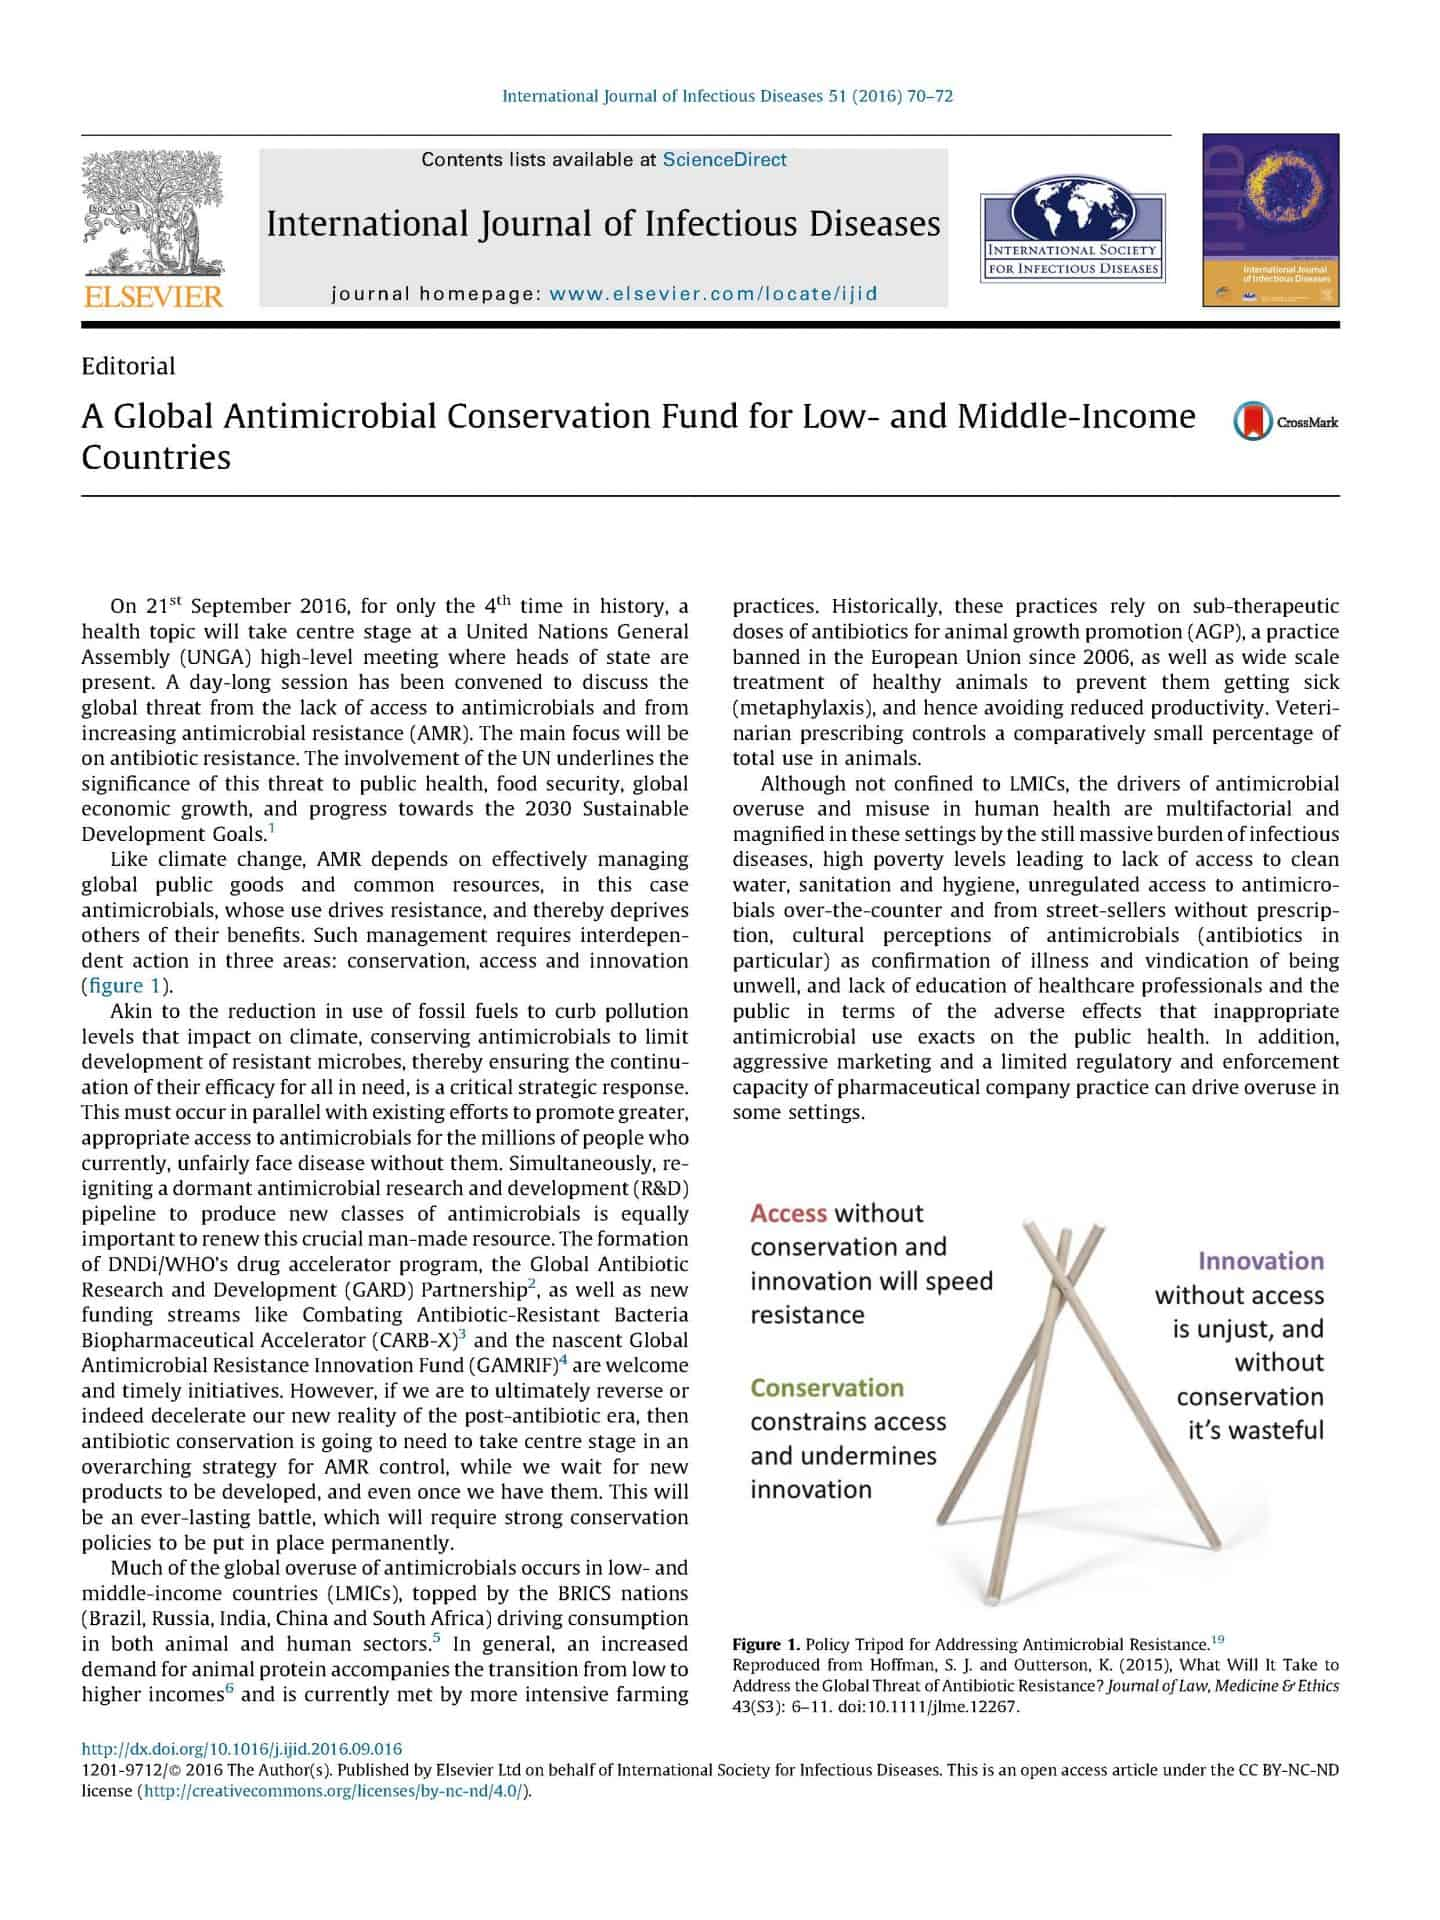 A Global Antimicrobial Conservation Fund for Low- and Middle-Income Countries